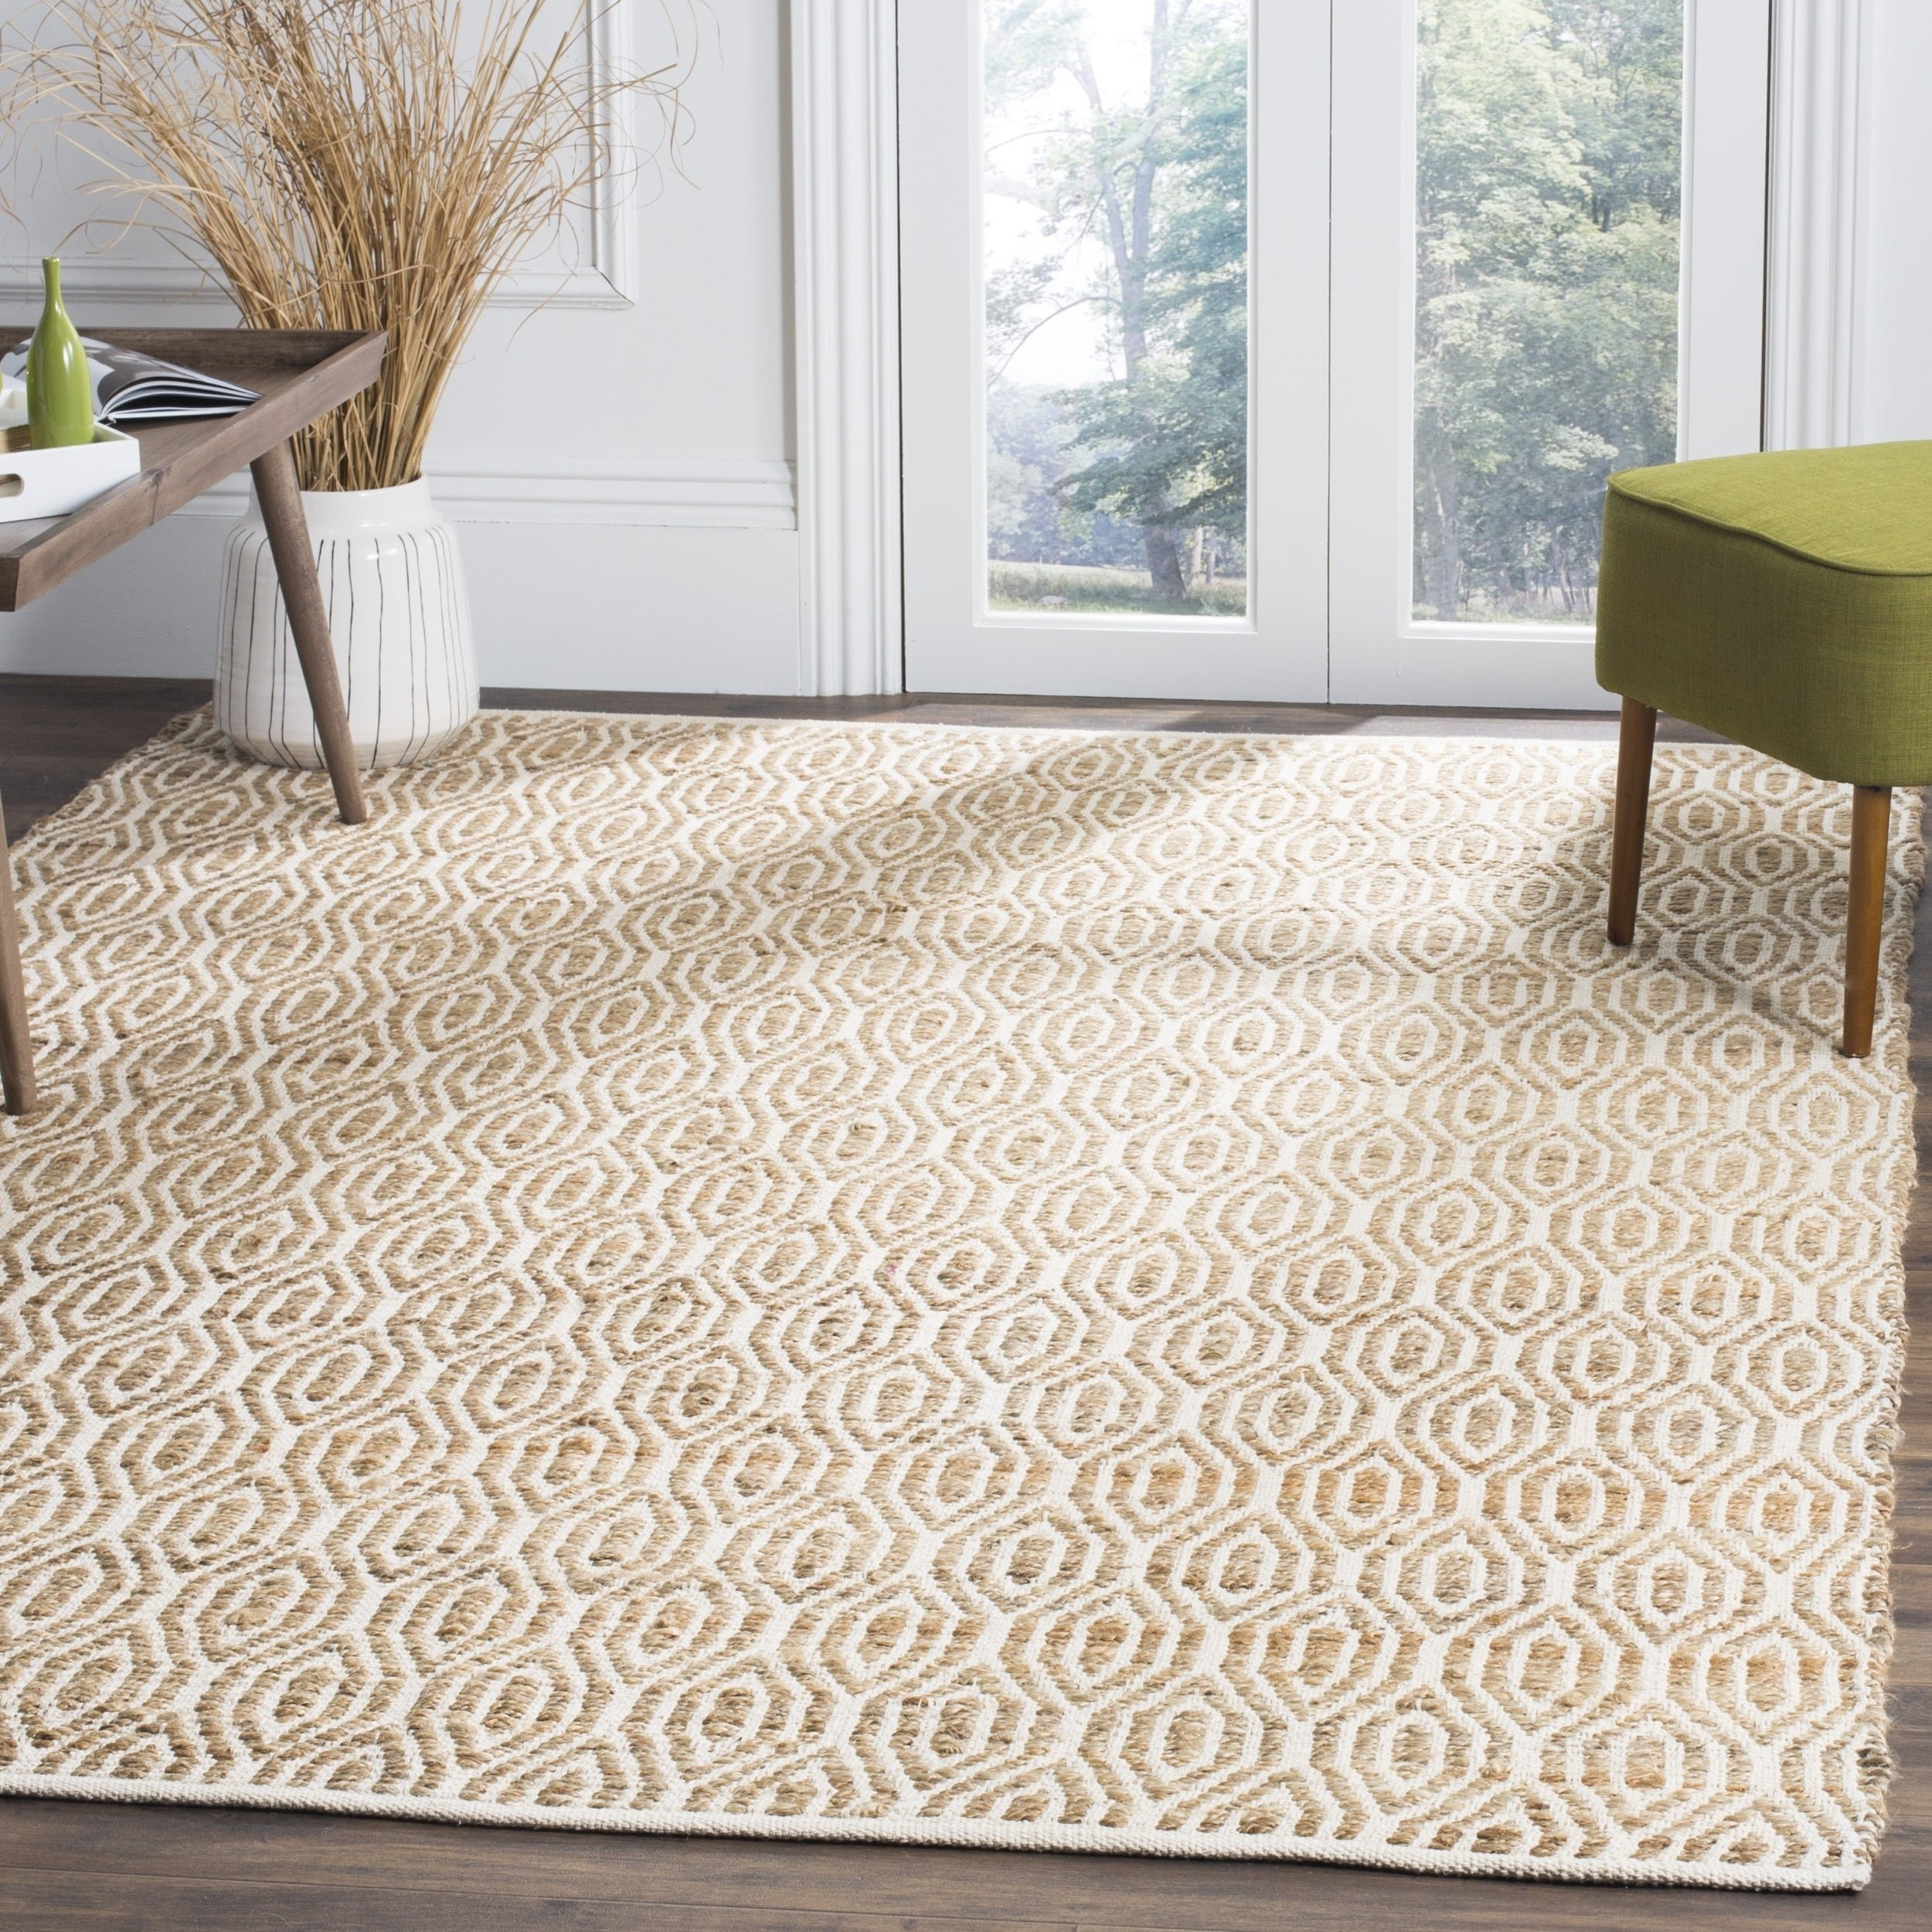 Safavieh Cape Cod Collection CAP822I Hand Woven Geometric Natural Jute and Cotton Area Rug (5' x 8') by Safavieh